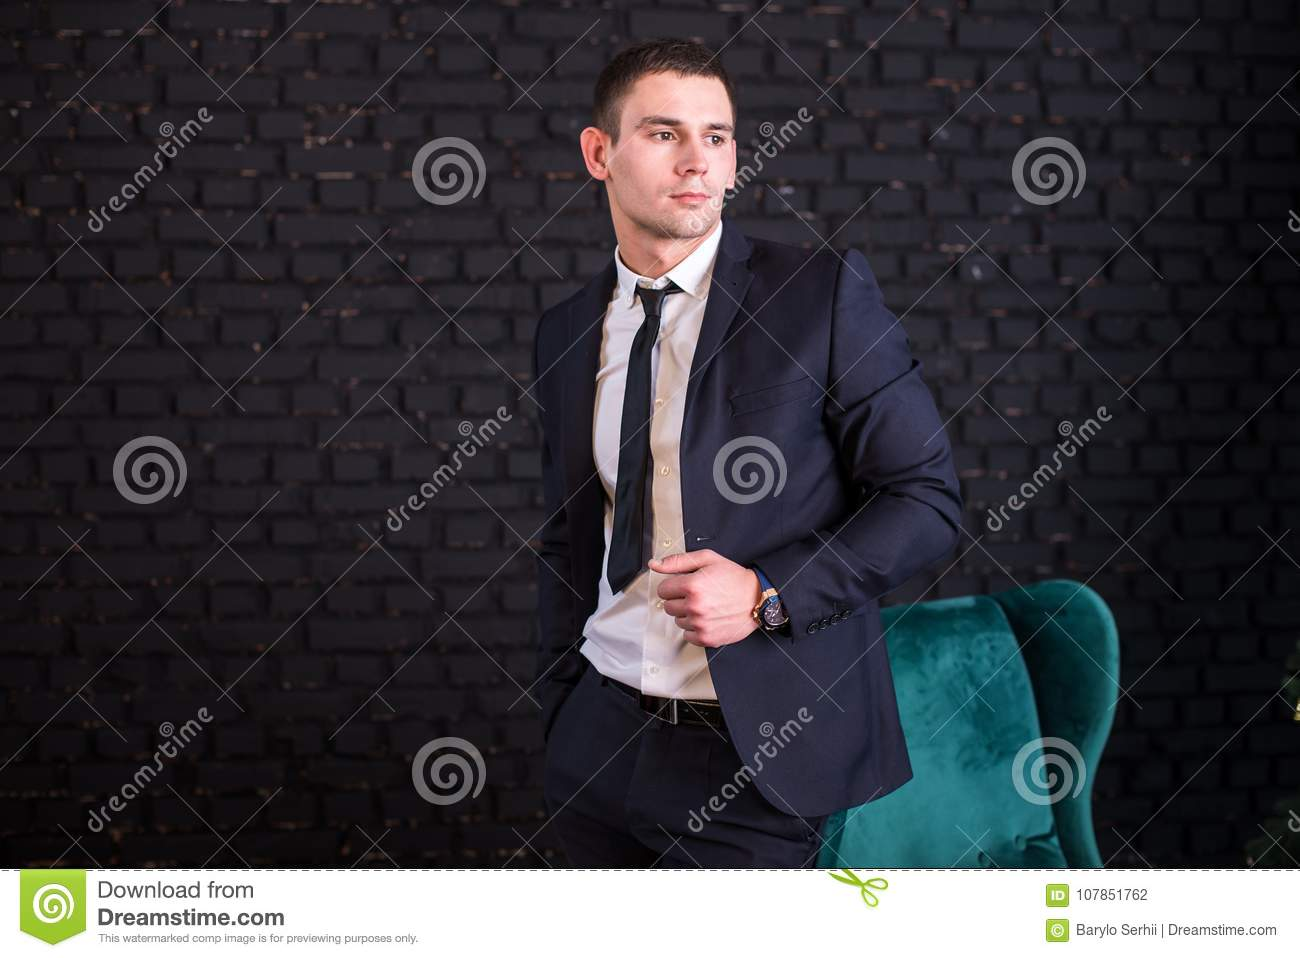 Handsome man in a business suit against a black brick wall, model photo. Succesful fashionable man